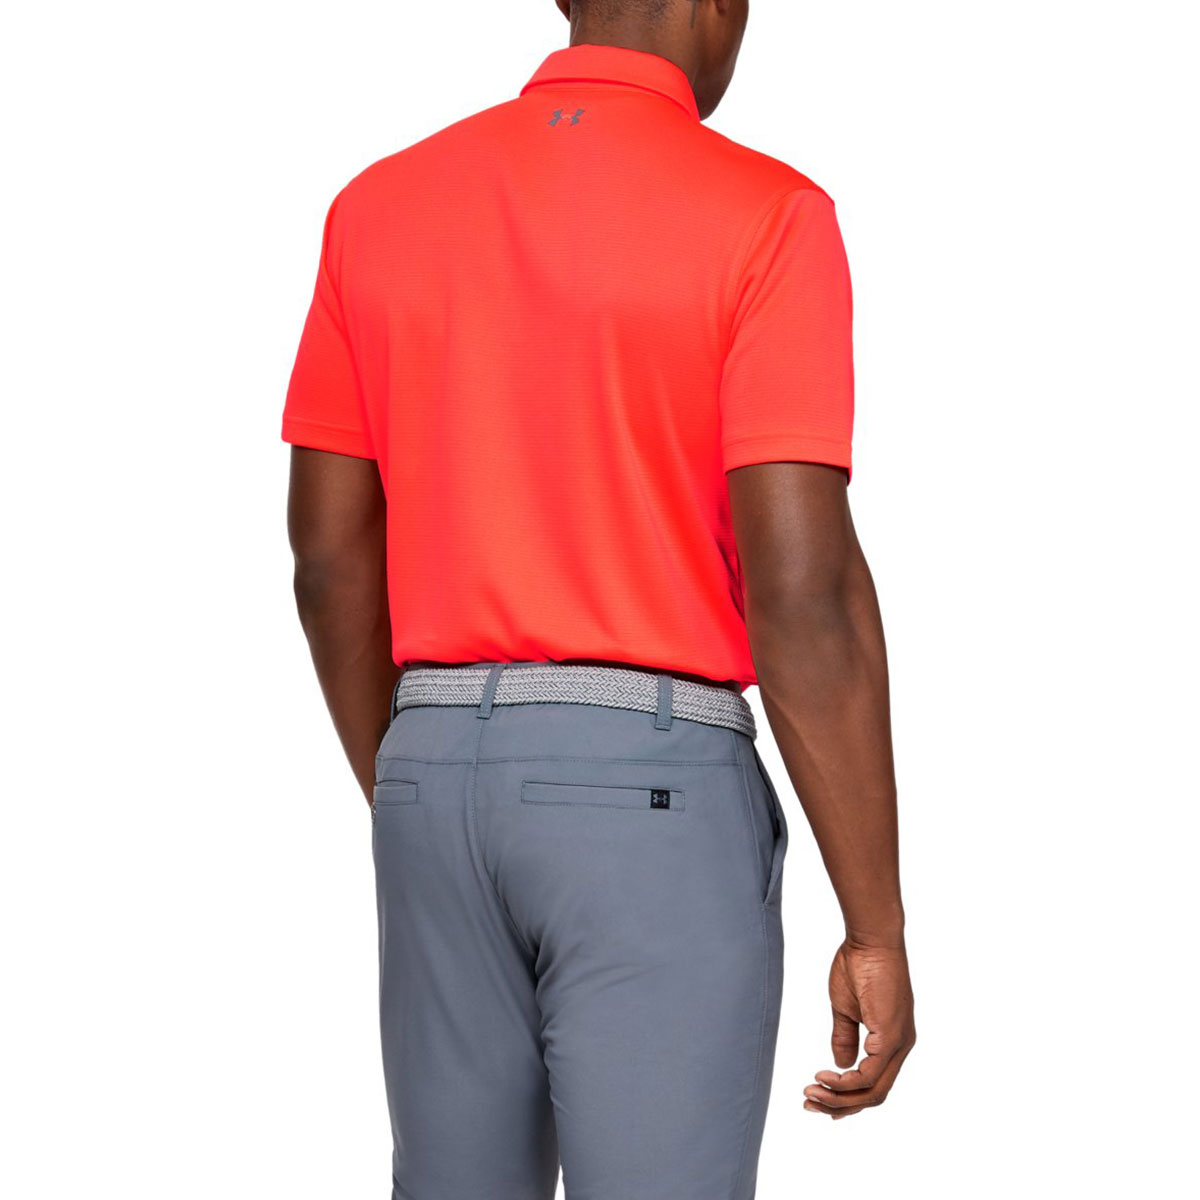 Under-Armour-Mens-Golf-Tech-Wicking-Textured-Soft-Light-Polo-Shirt thumbnail 15